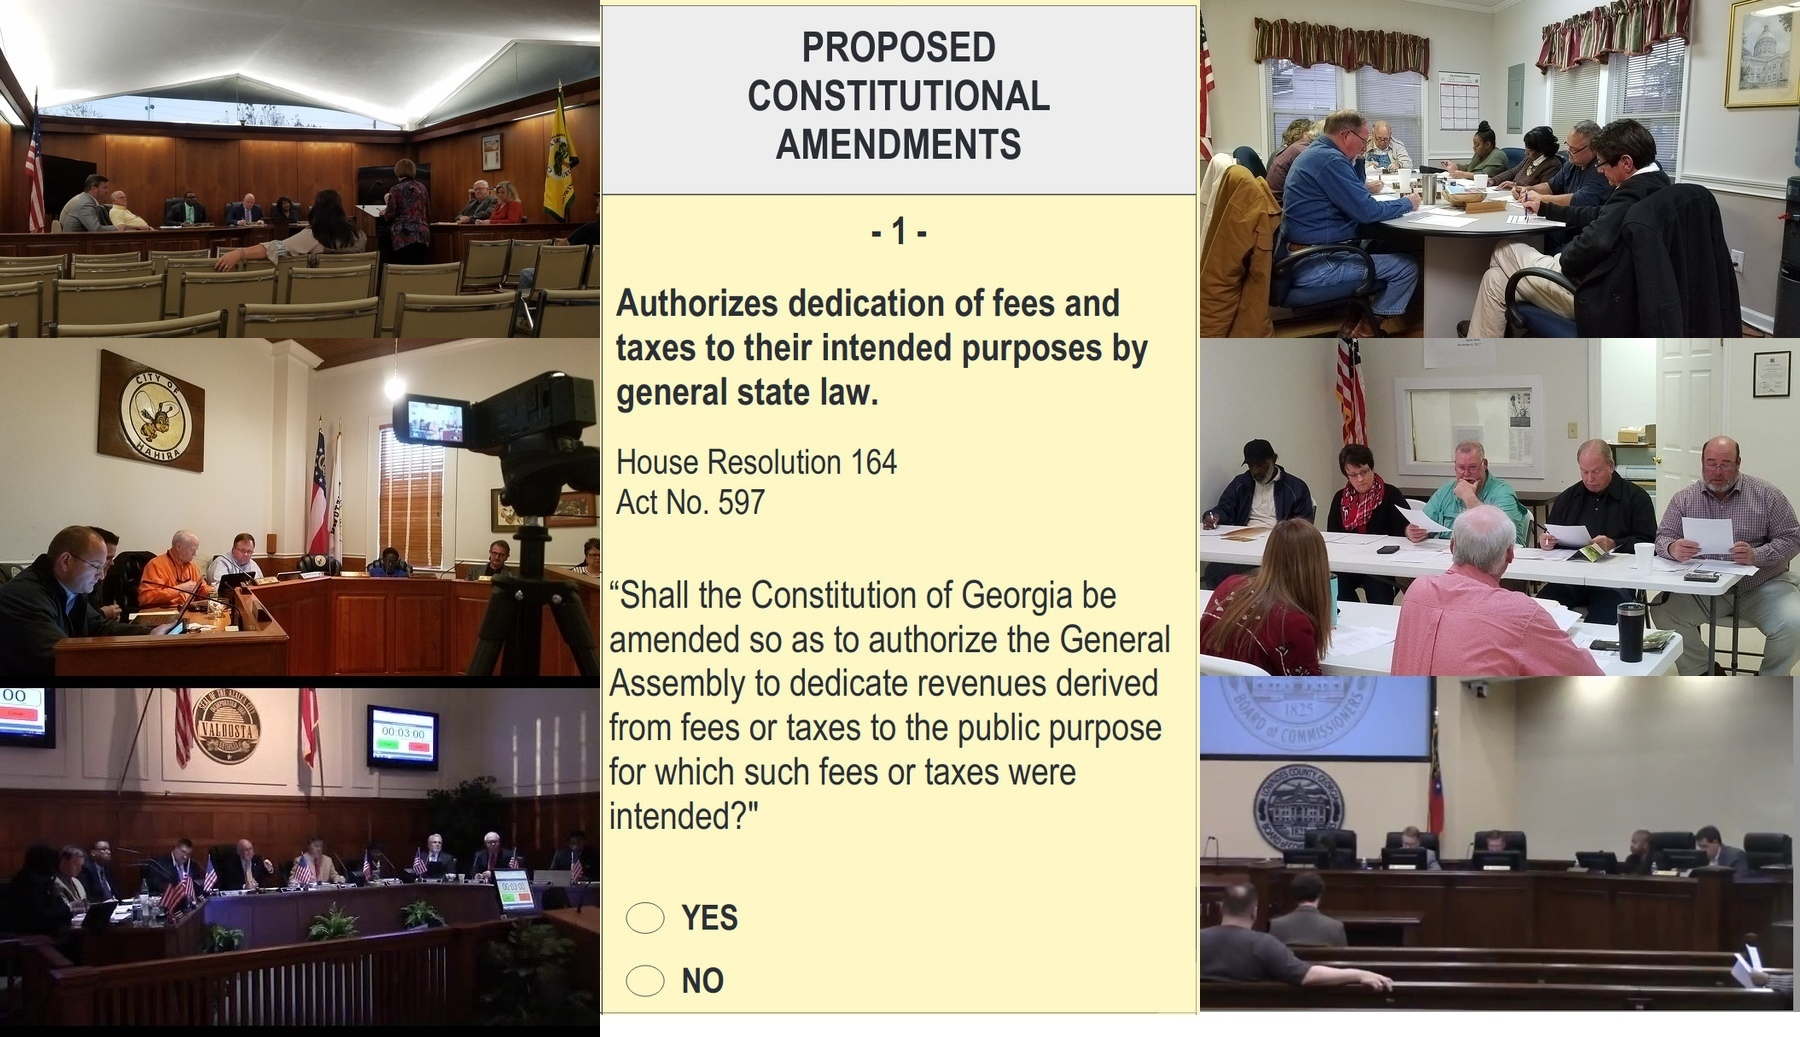 [Six cities and counties for Amendment 1]